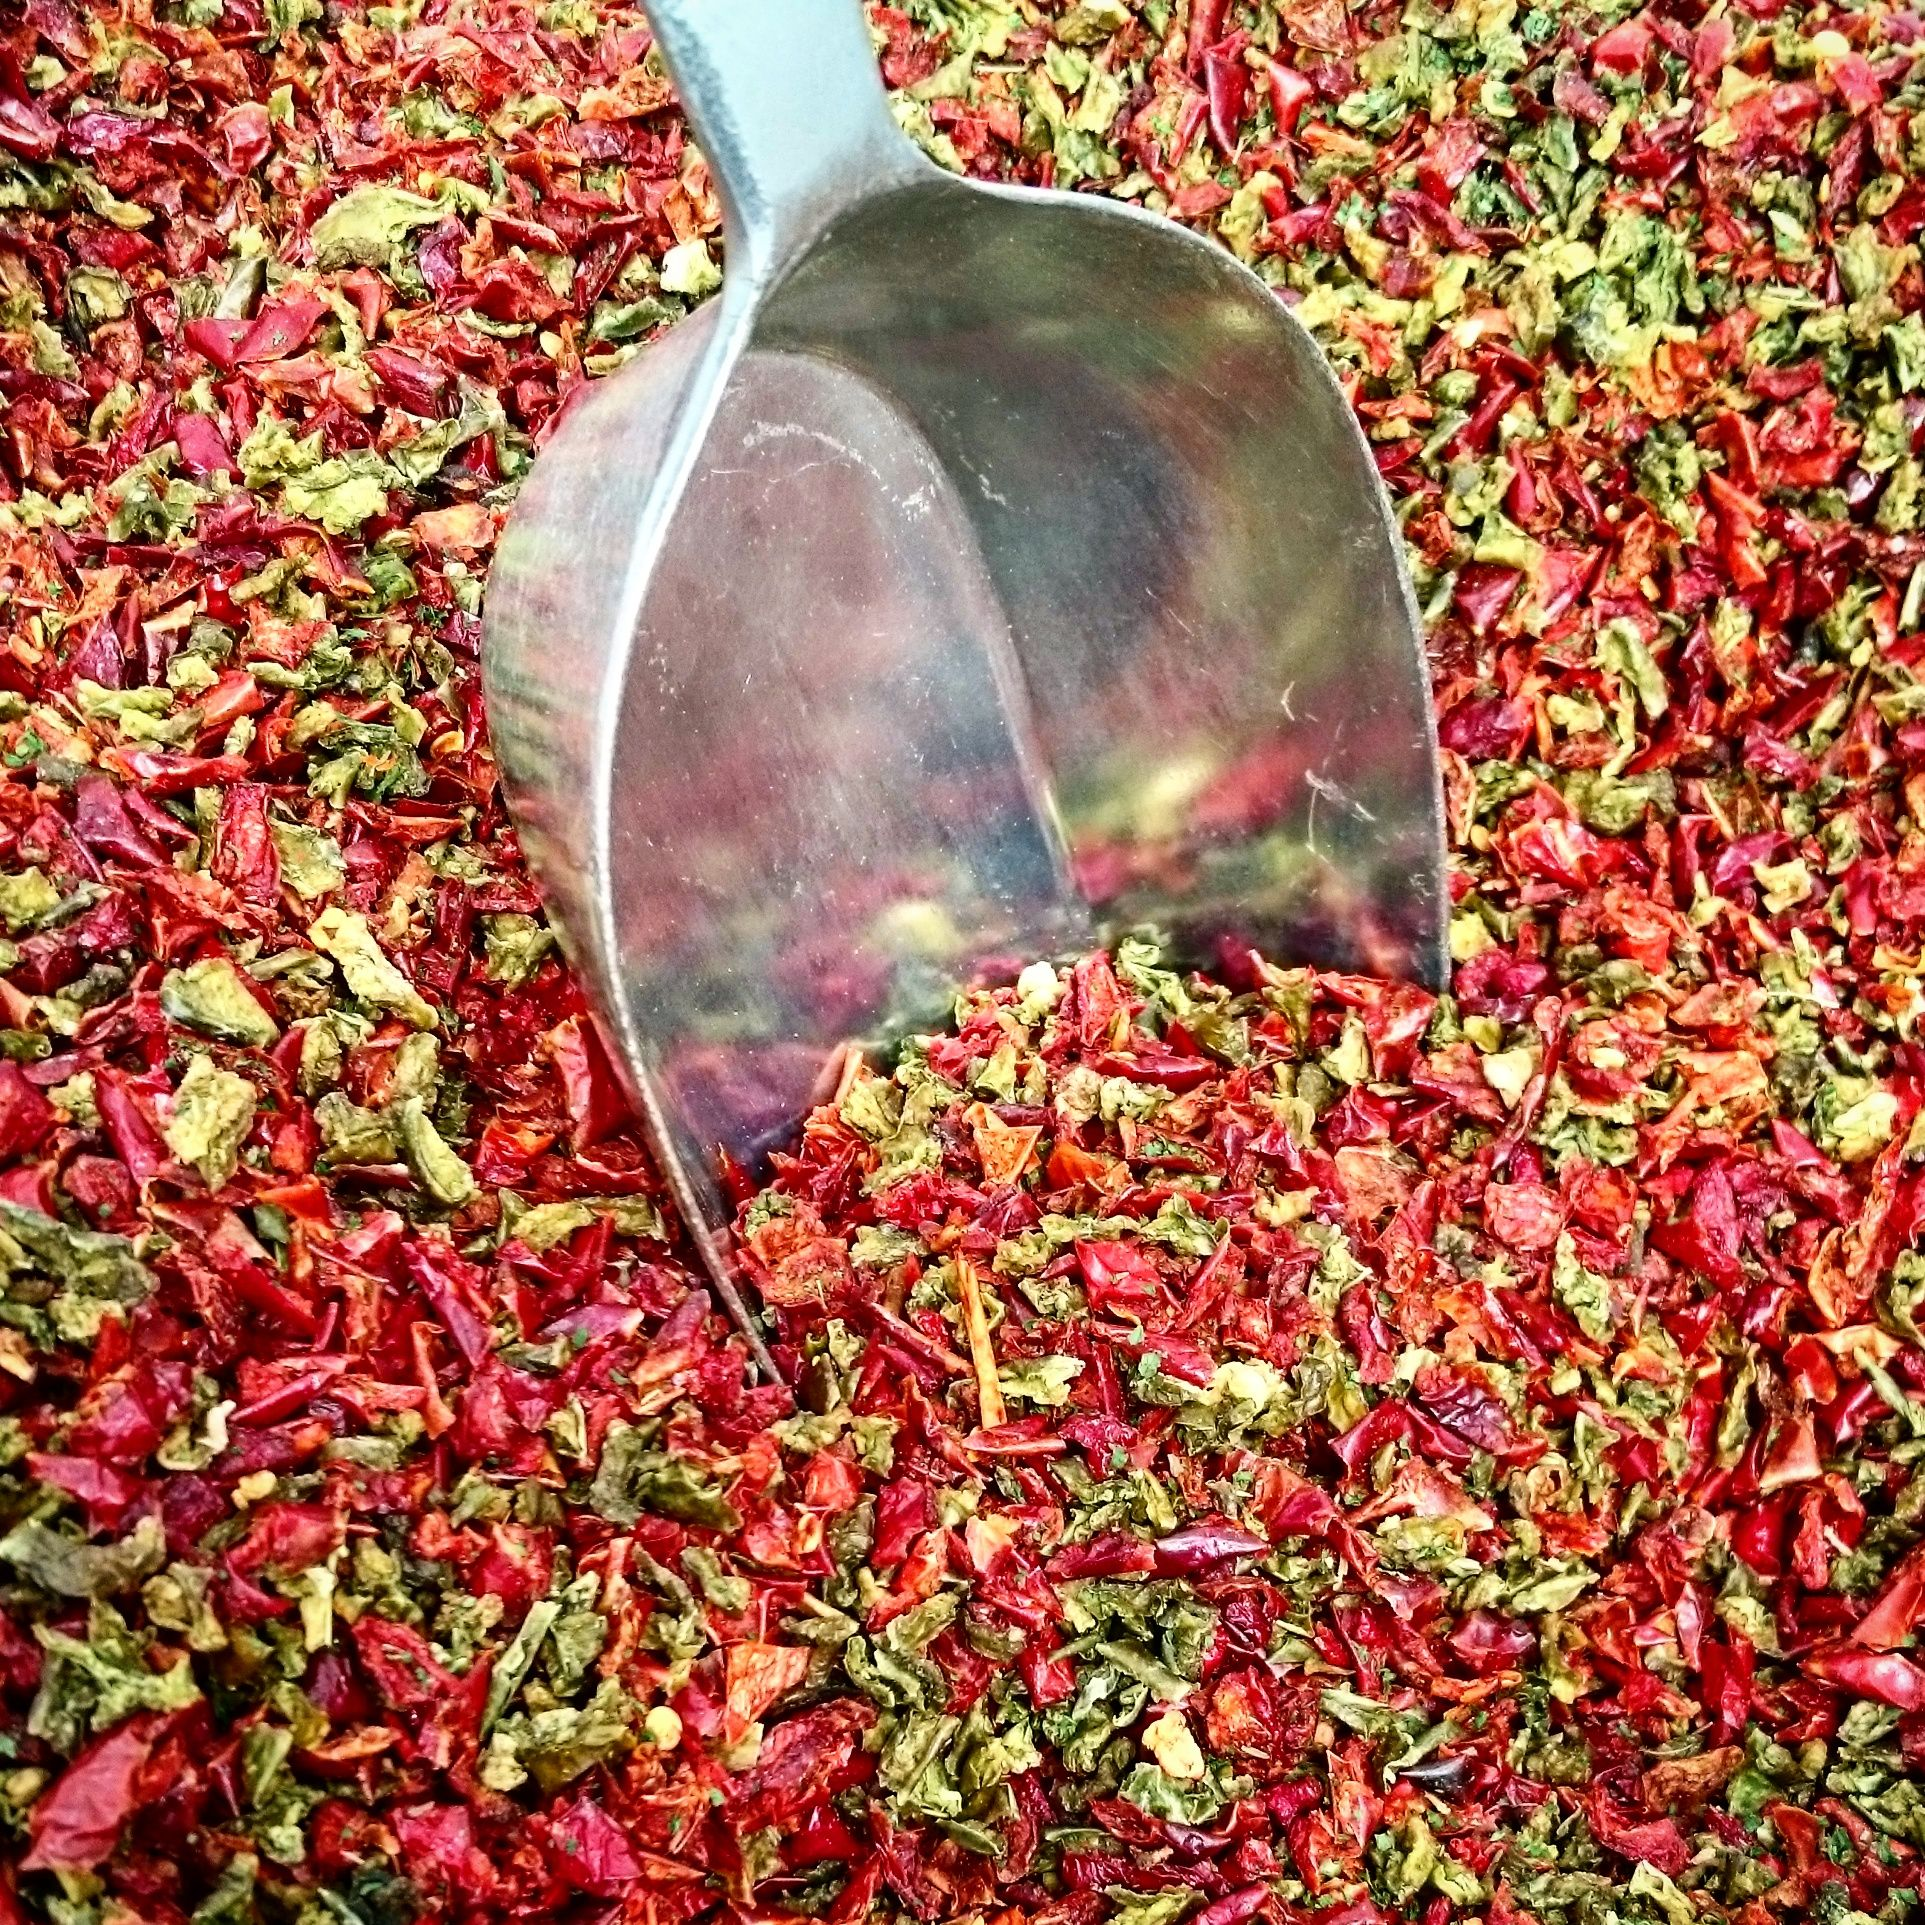 Hot stuff coming through! We're packing hot sauce spices for next month's Friday Night Curry Veg - Jamaican Vegetable Curry #hot